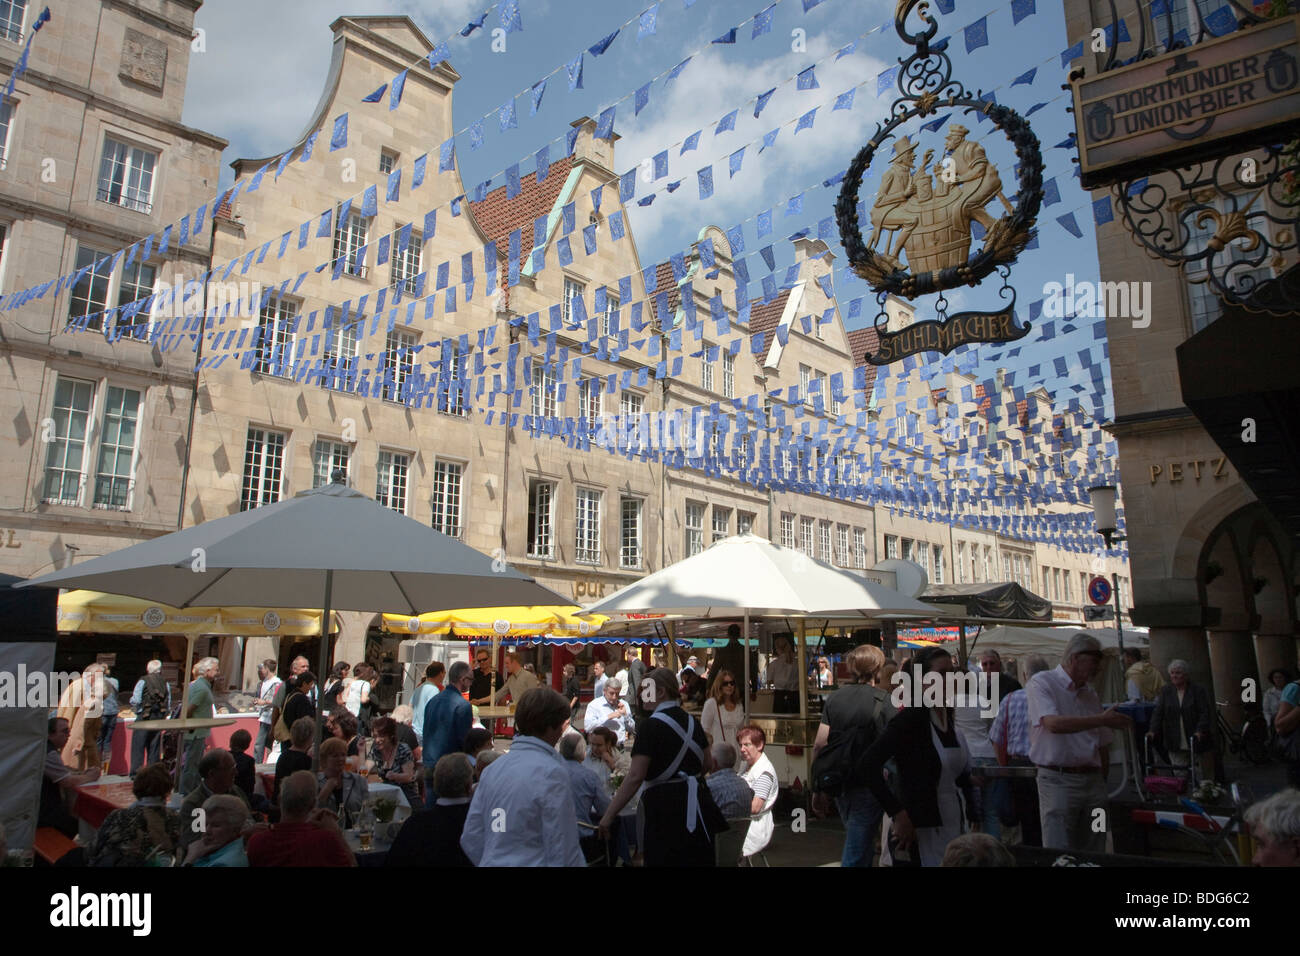 Europe Day in Muenster, gabled houses on the Prinzipalmarkt square, North Rhine-Westphalia, Germany, Europe - Stock Image